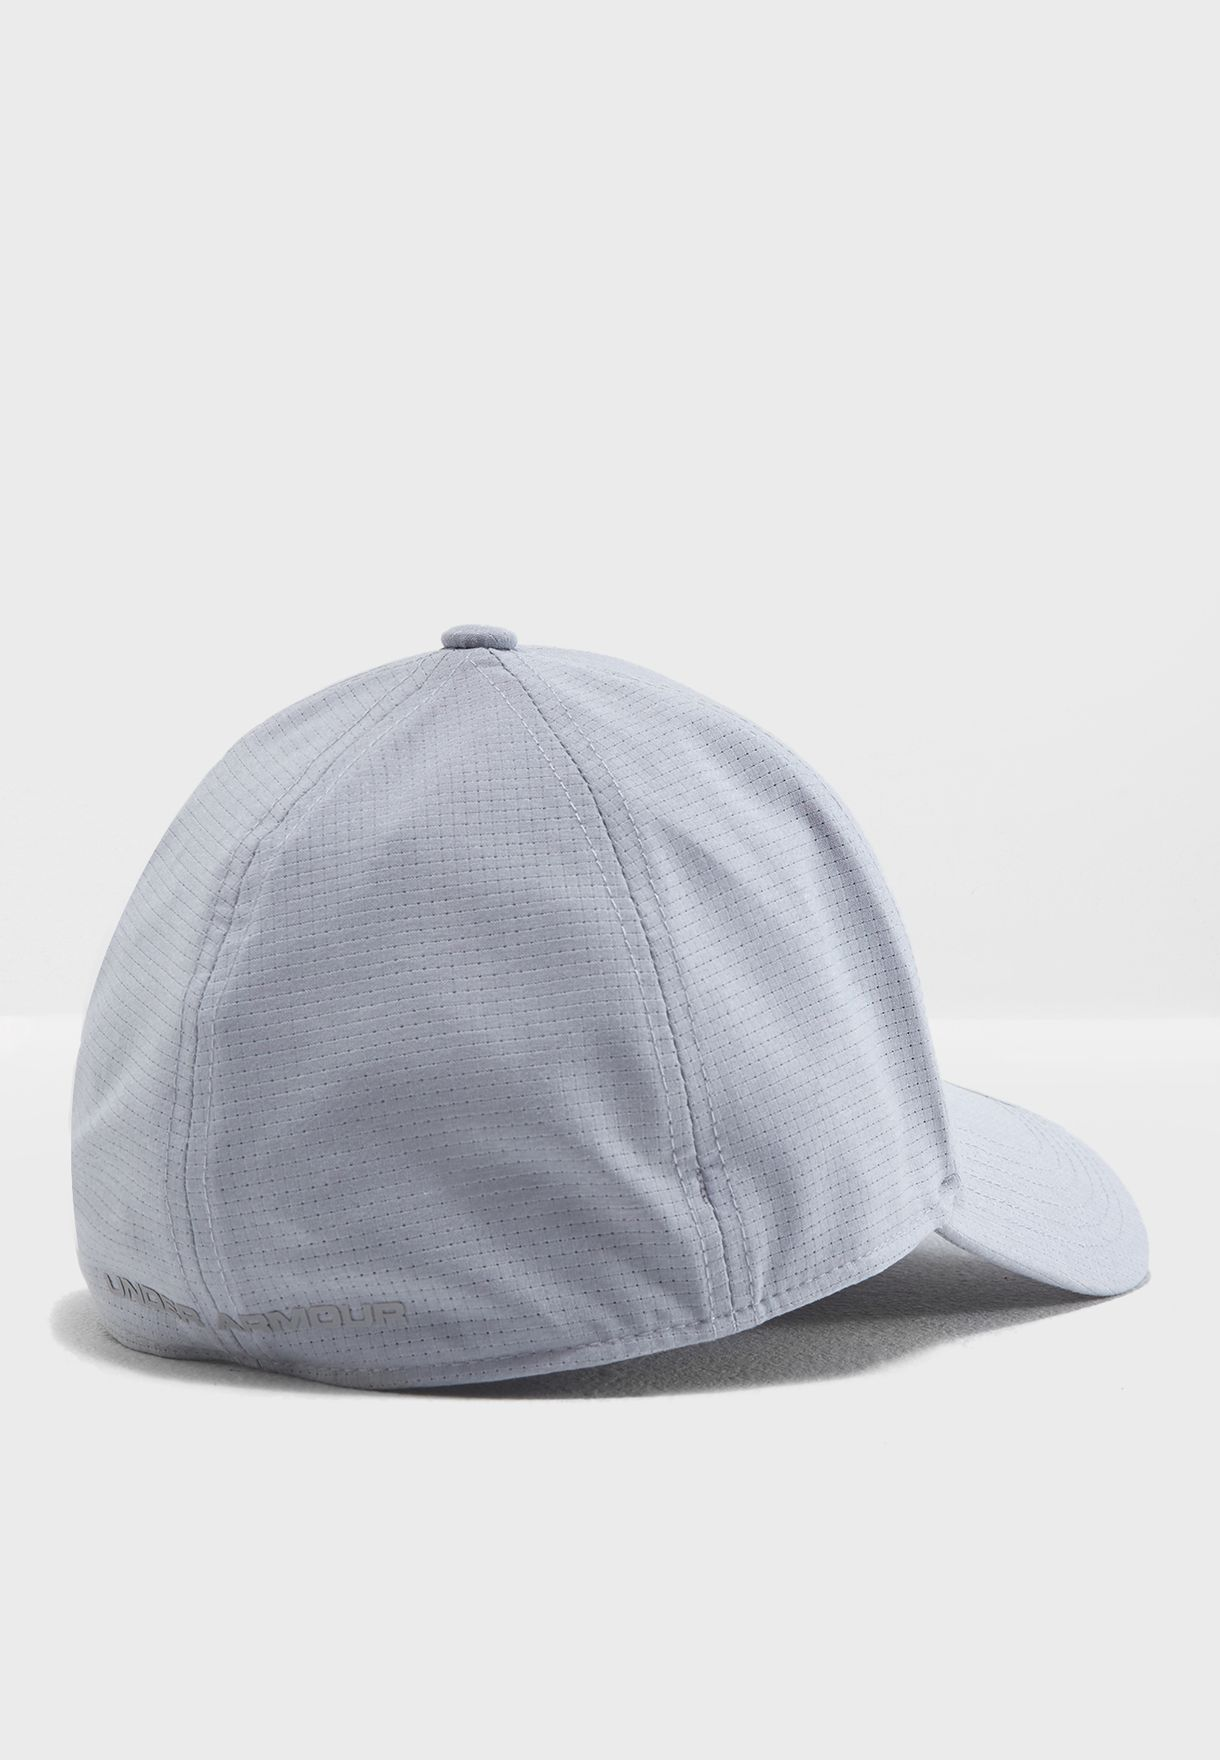 Shop Under Armour grey Coolswitch Logo Cap 1291856-941 for Men in ... 5456f304aa98